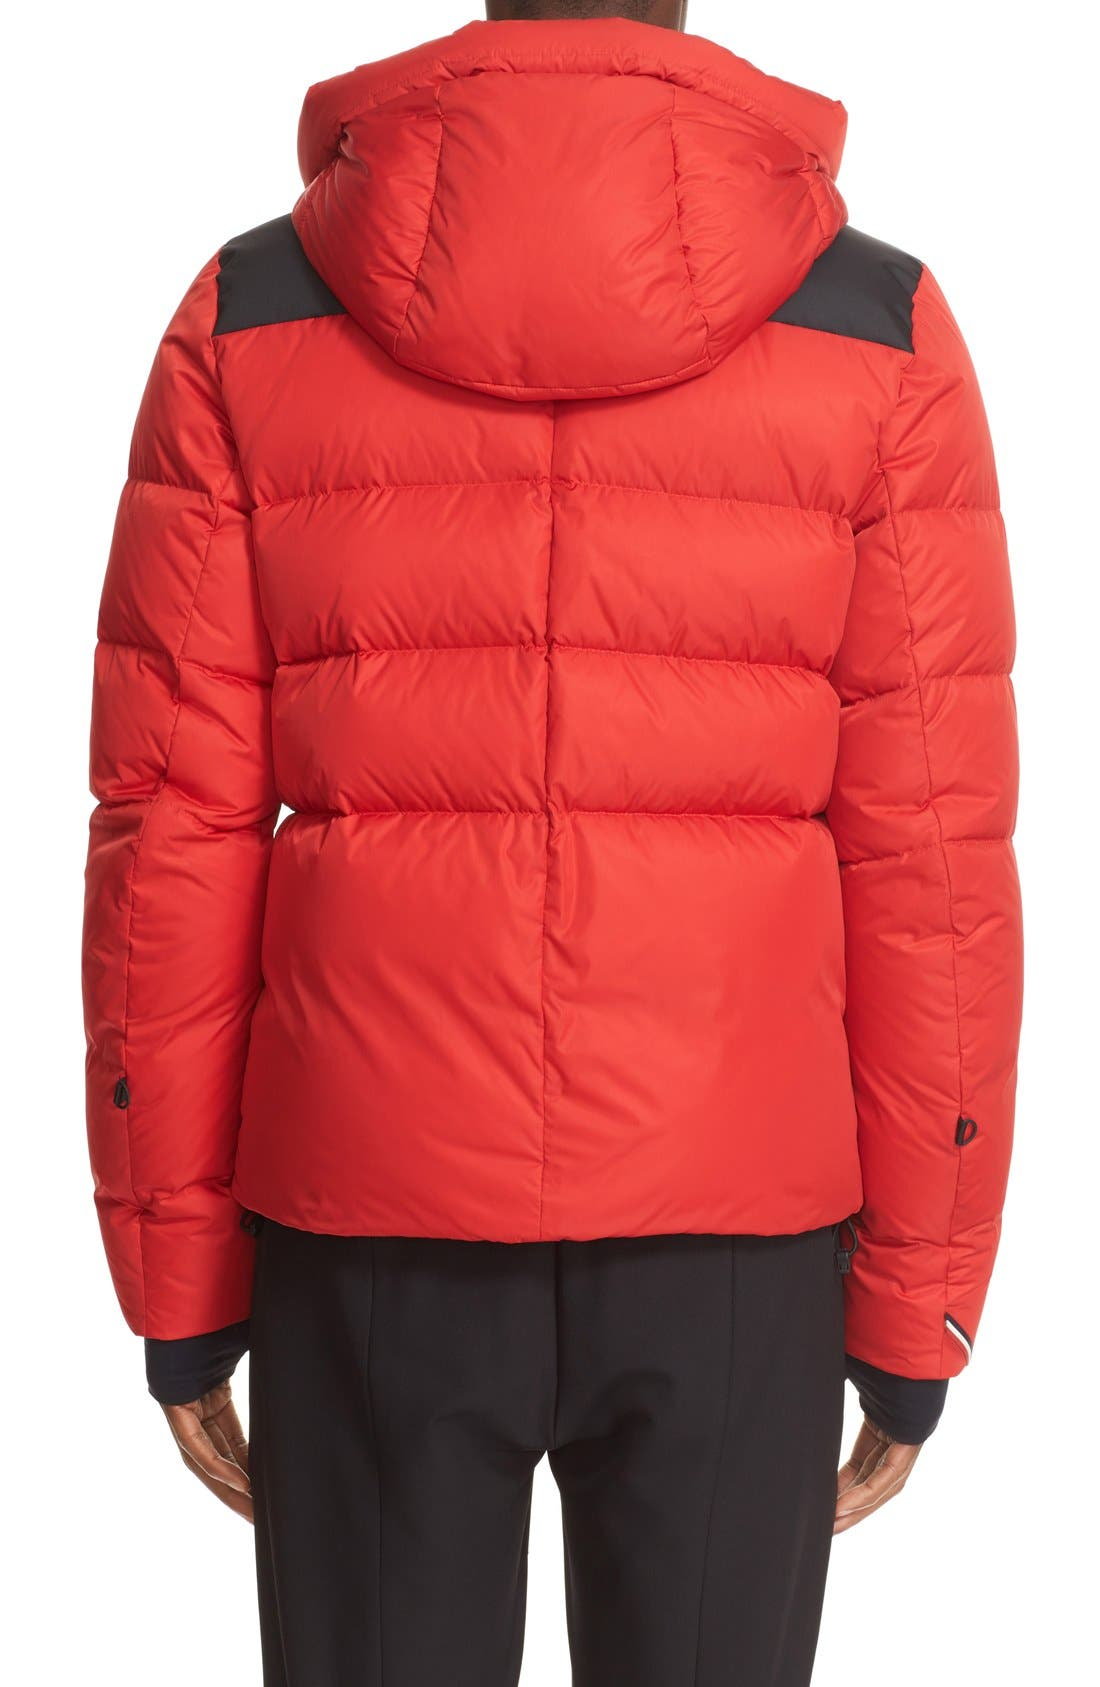 'Rodenberg' Water Resistant Down Jacket,                             Alternate thumbnail 2, color,                             611